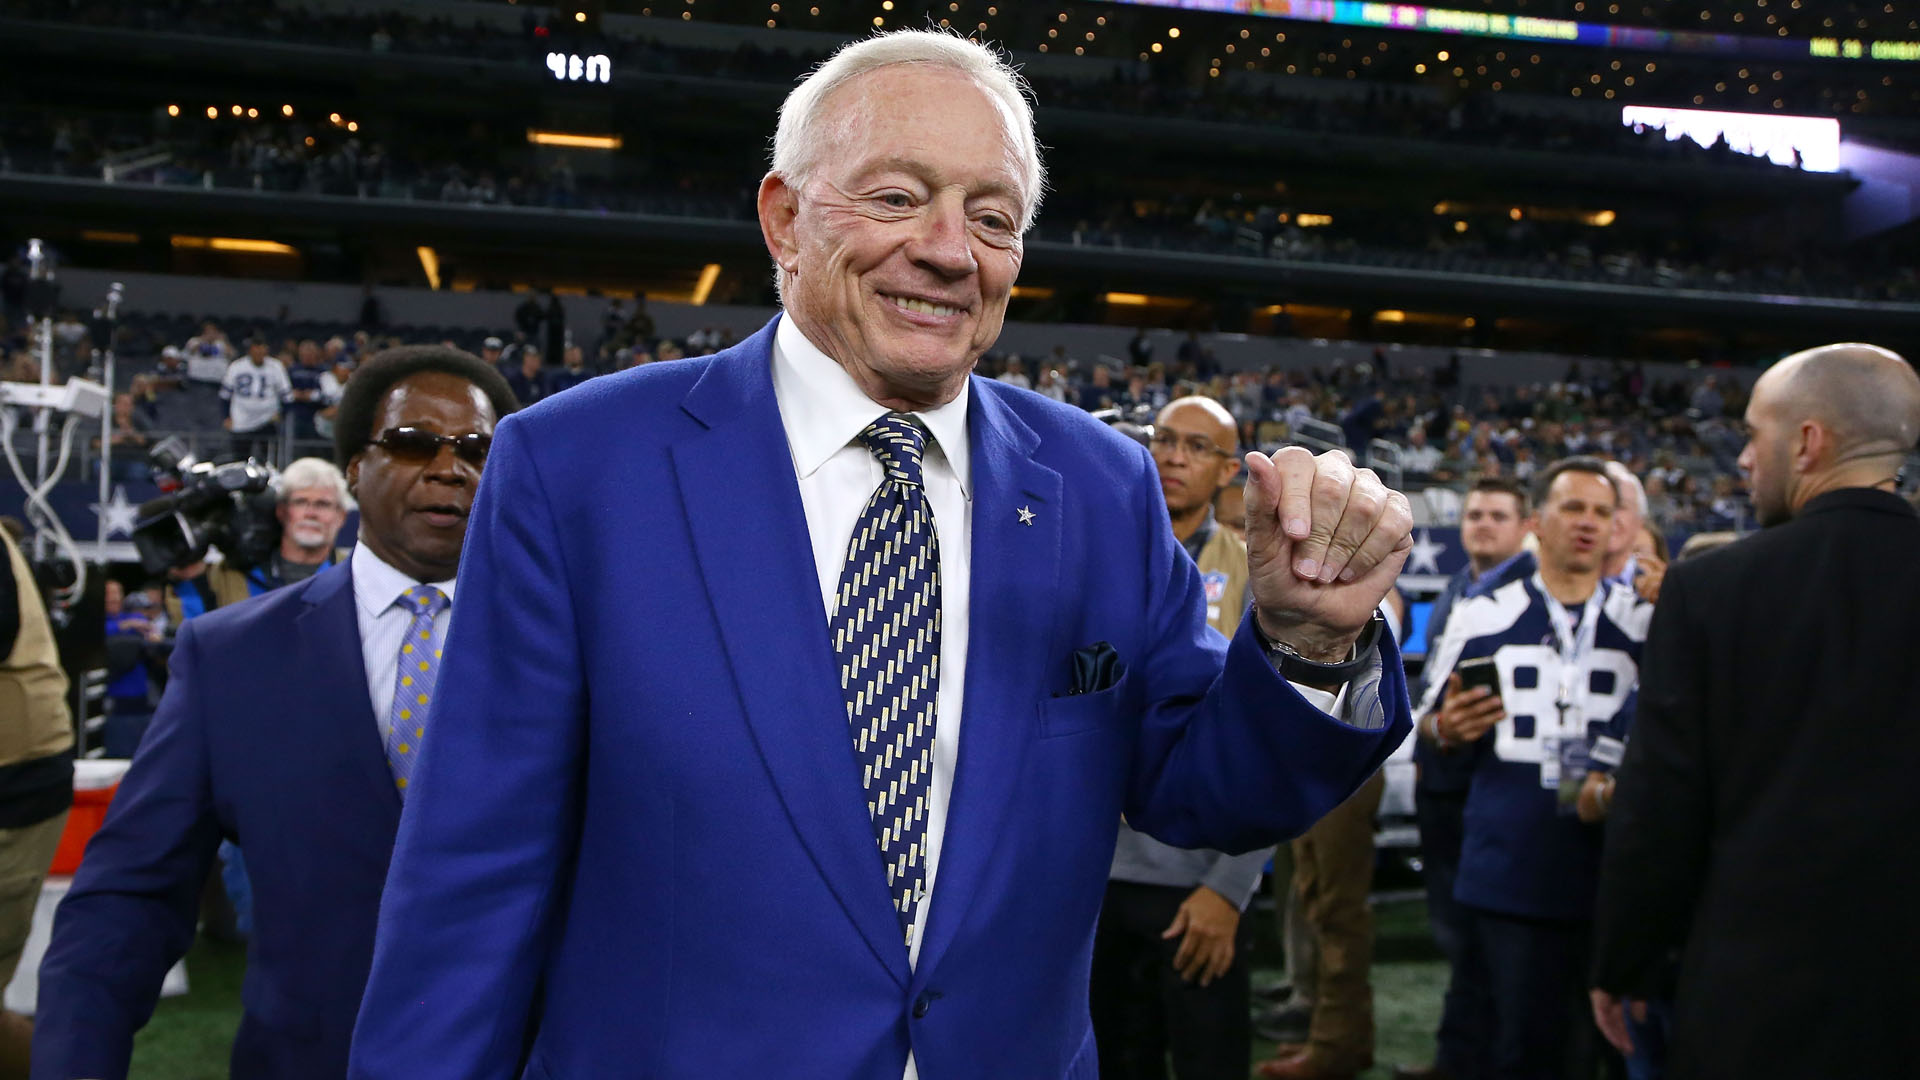 Jerry Jones, owner of the Dallas Cowboys, walks on the field before the game against the Philadelphia Eagles at AT&T Stadium on November 19, 2017 in Arlington, Texas. (Credit: Tom Pennington/Getty Images)